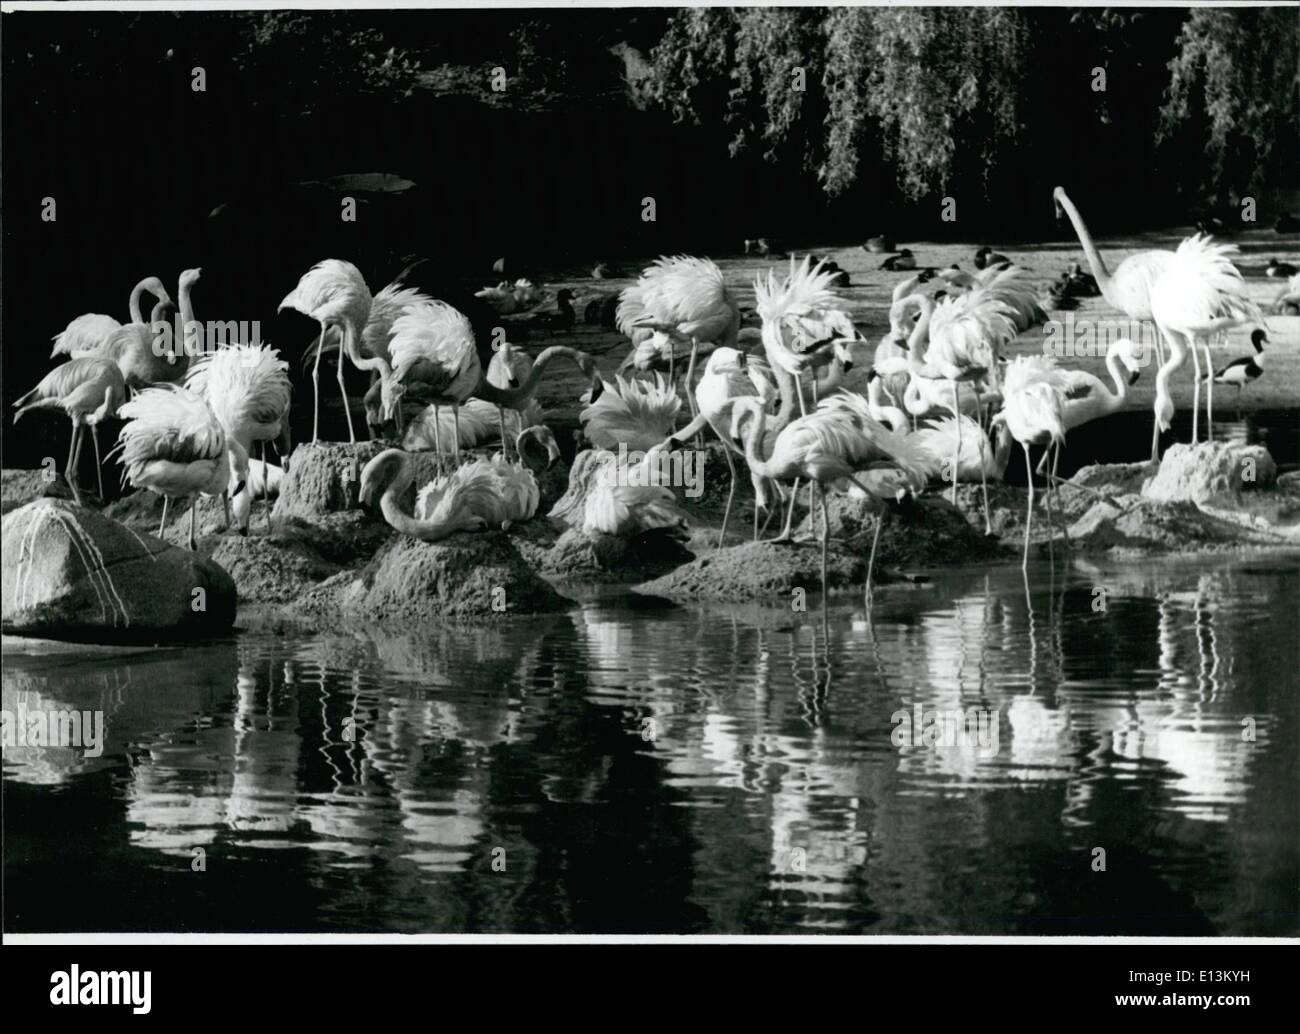 Mar. 02, 2012 - Slowly they feel like home in southern regions the flamingos in the Hamburg/ West Germany zoo Hagenbeck. - Stock Image